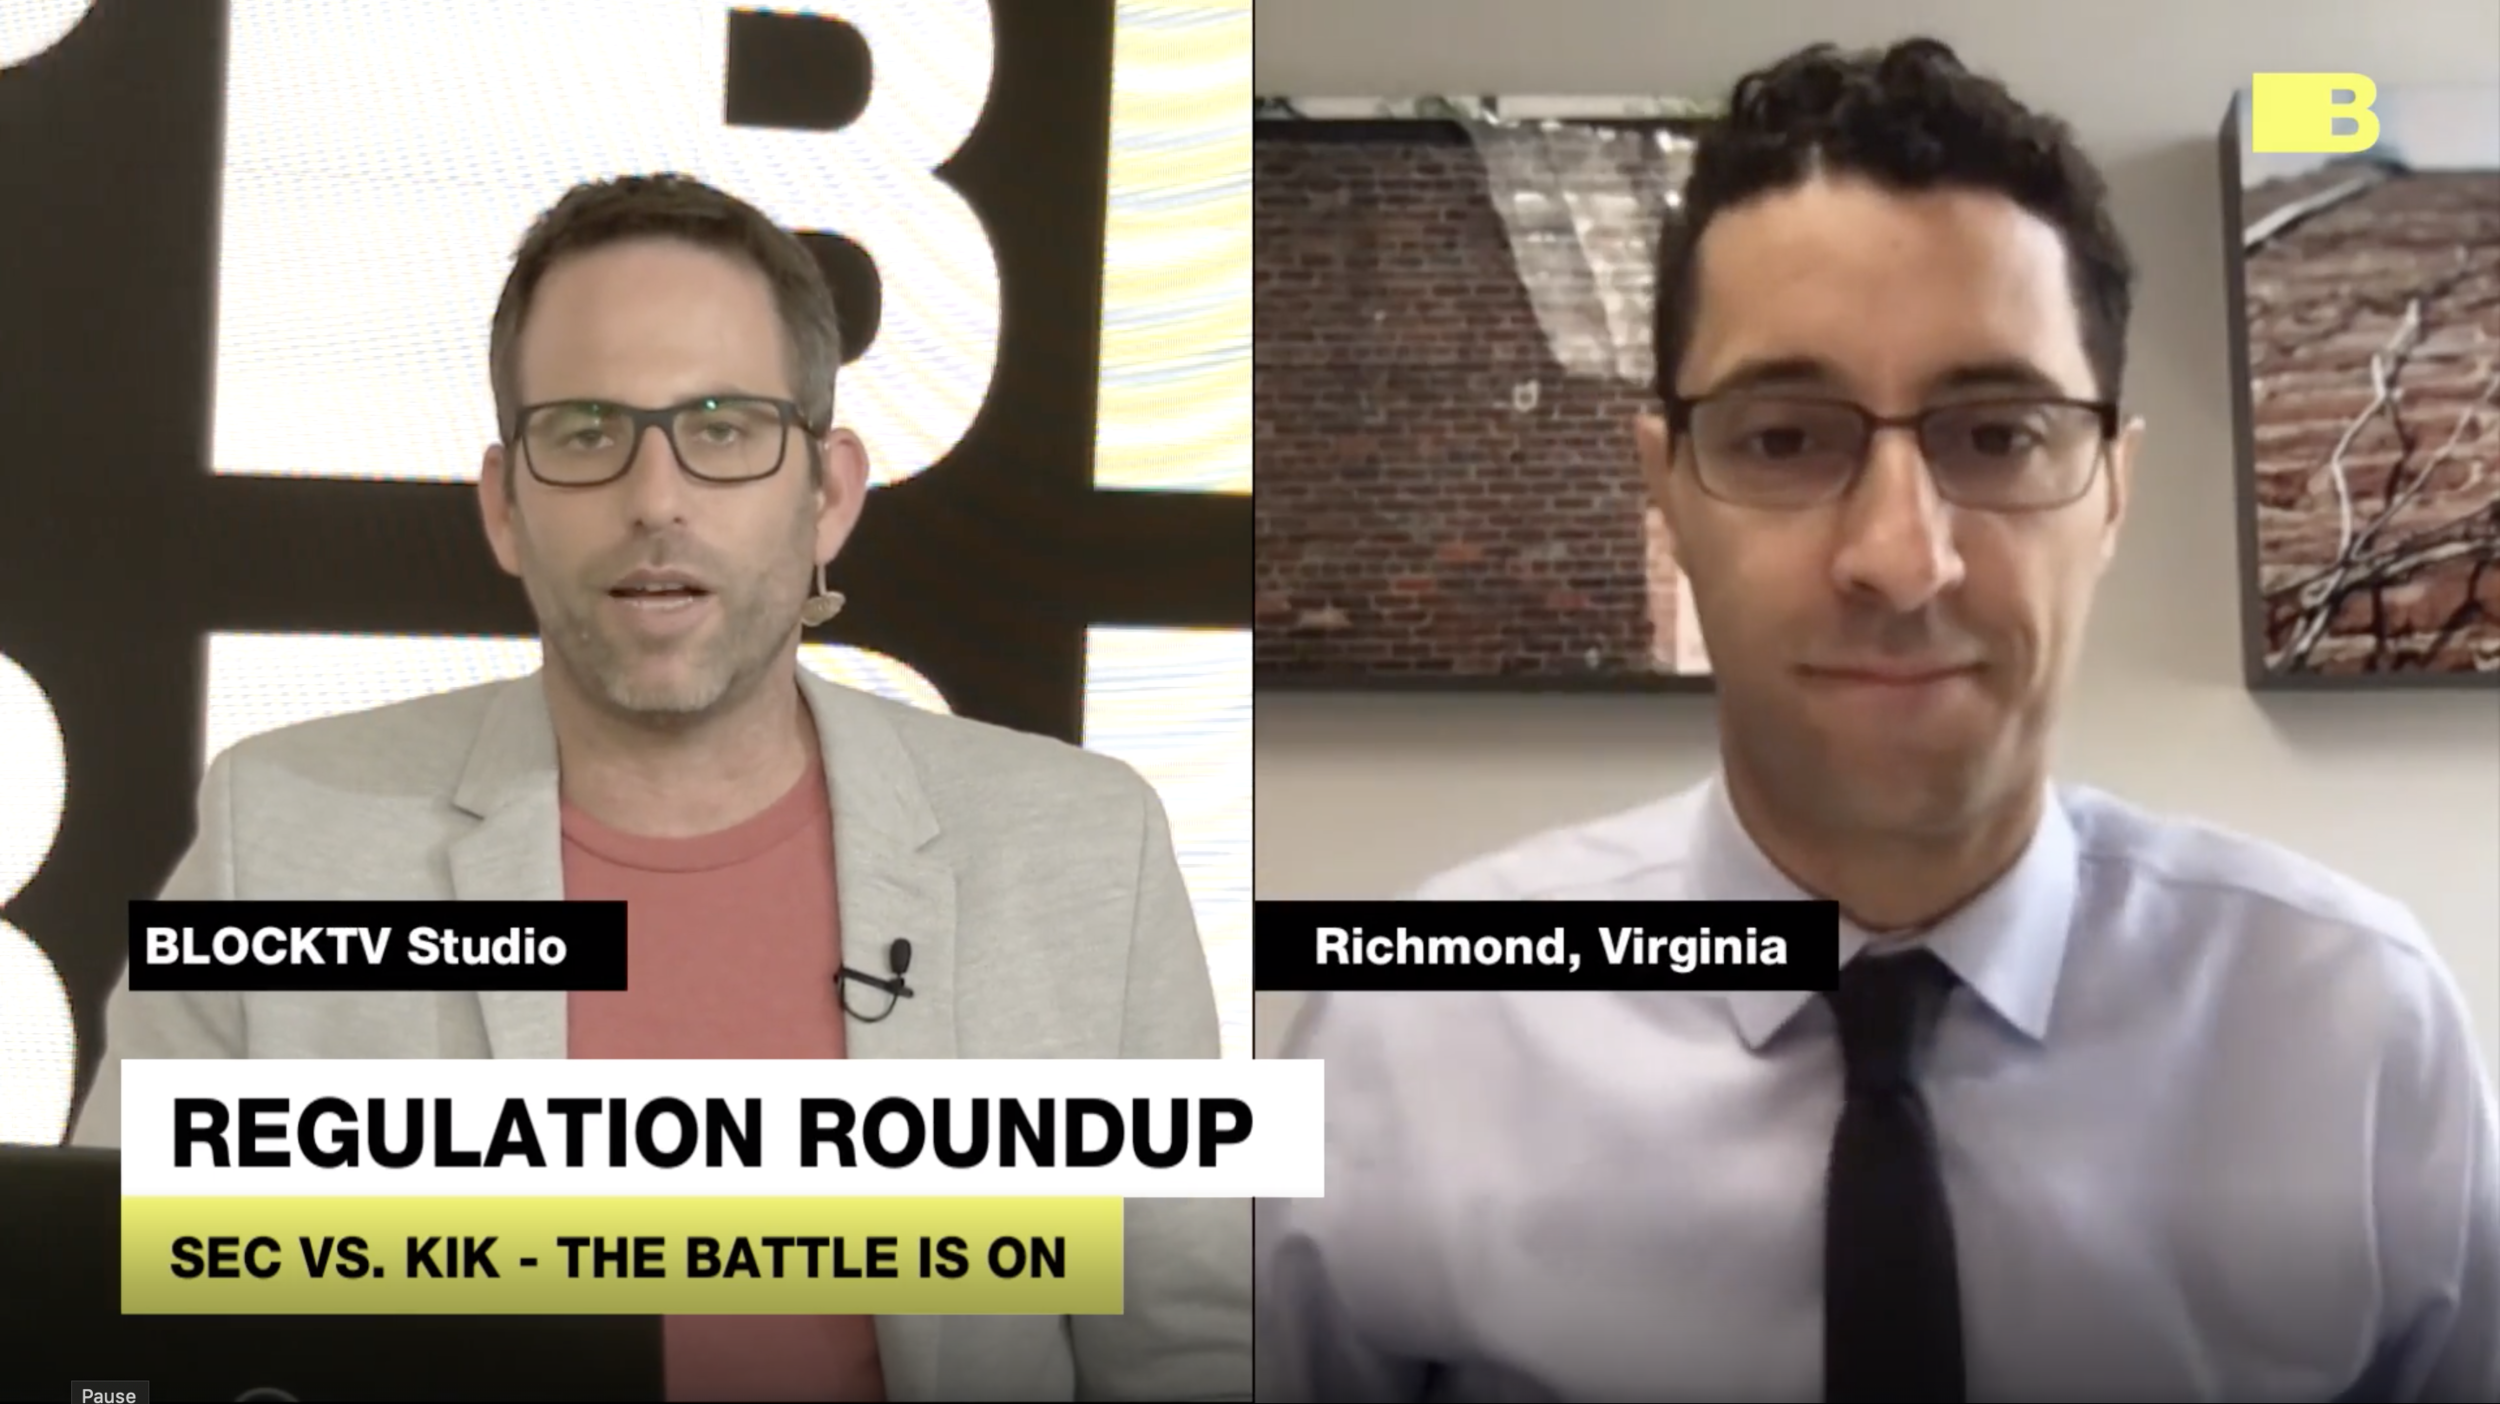 Regulation Roundup - Block TV (June 6, 2019)